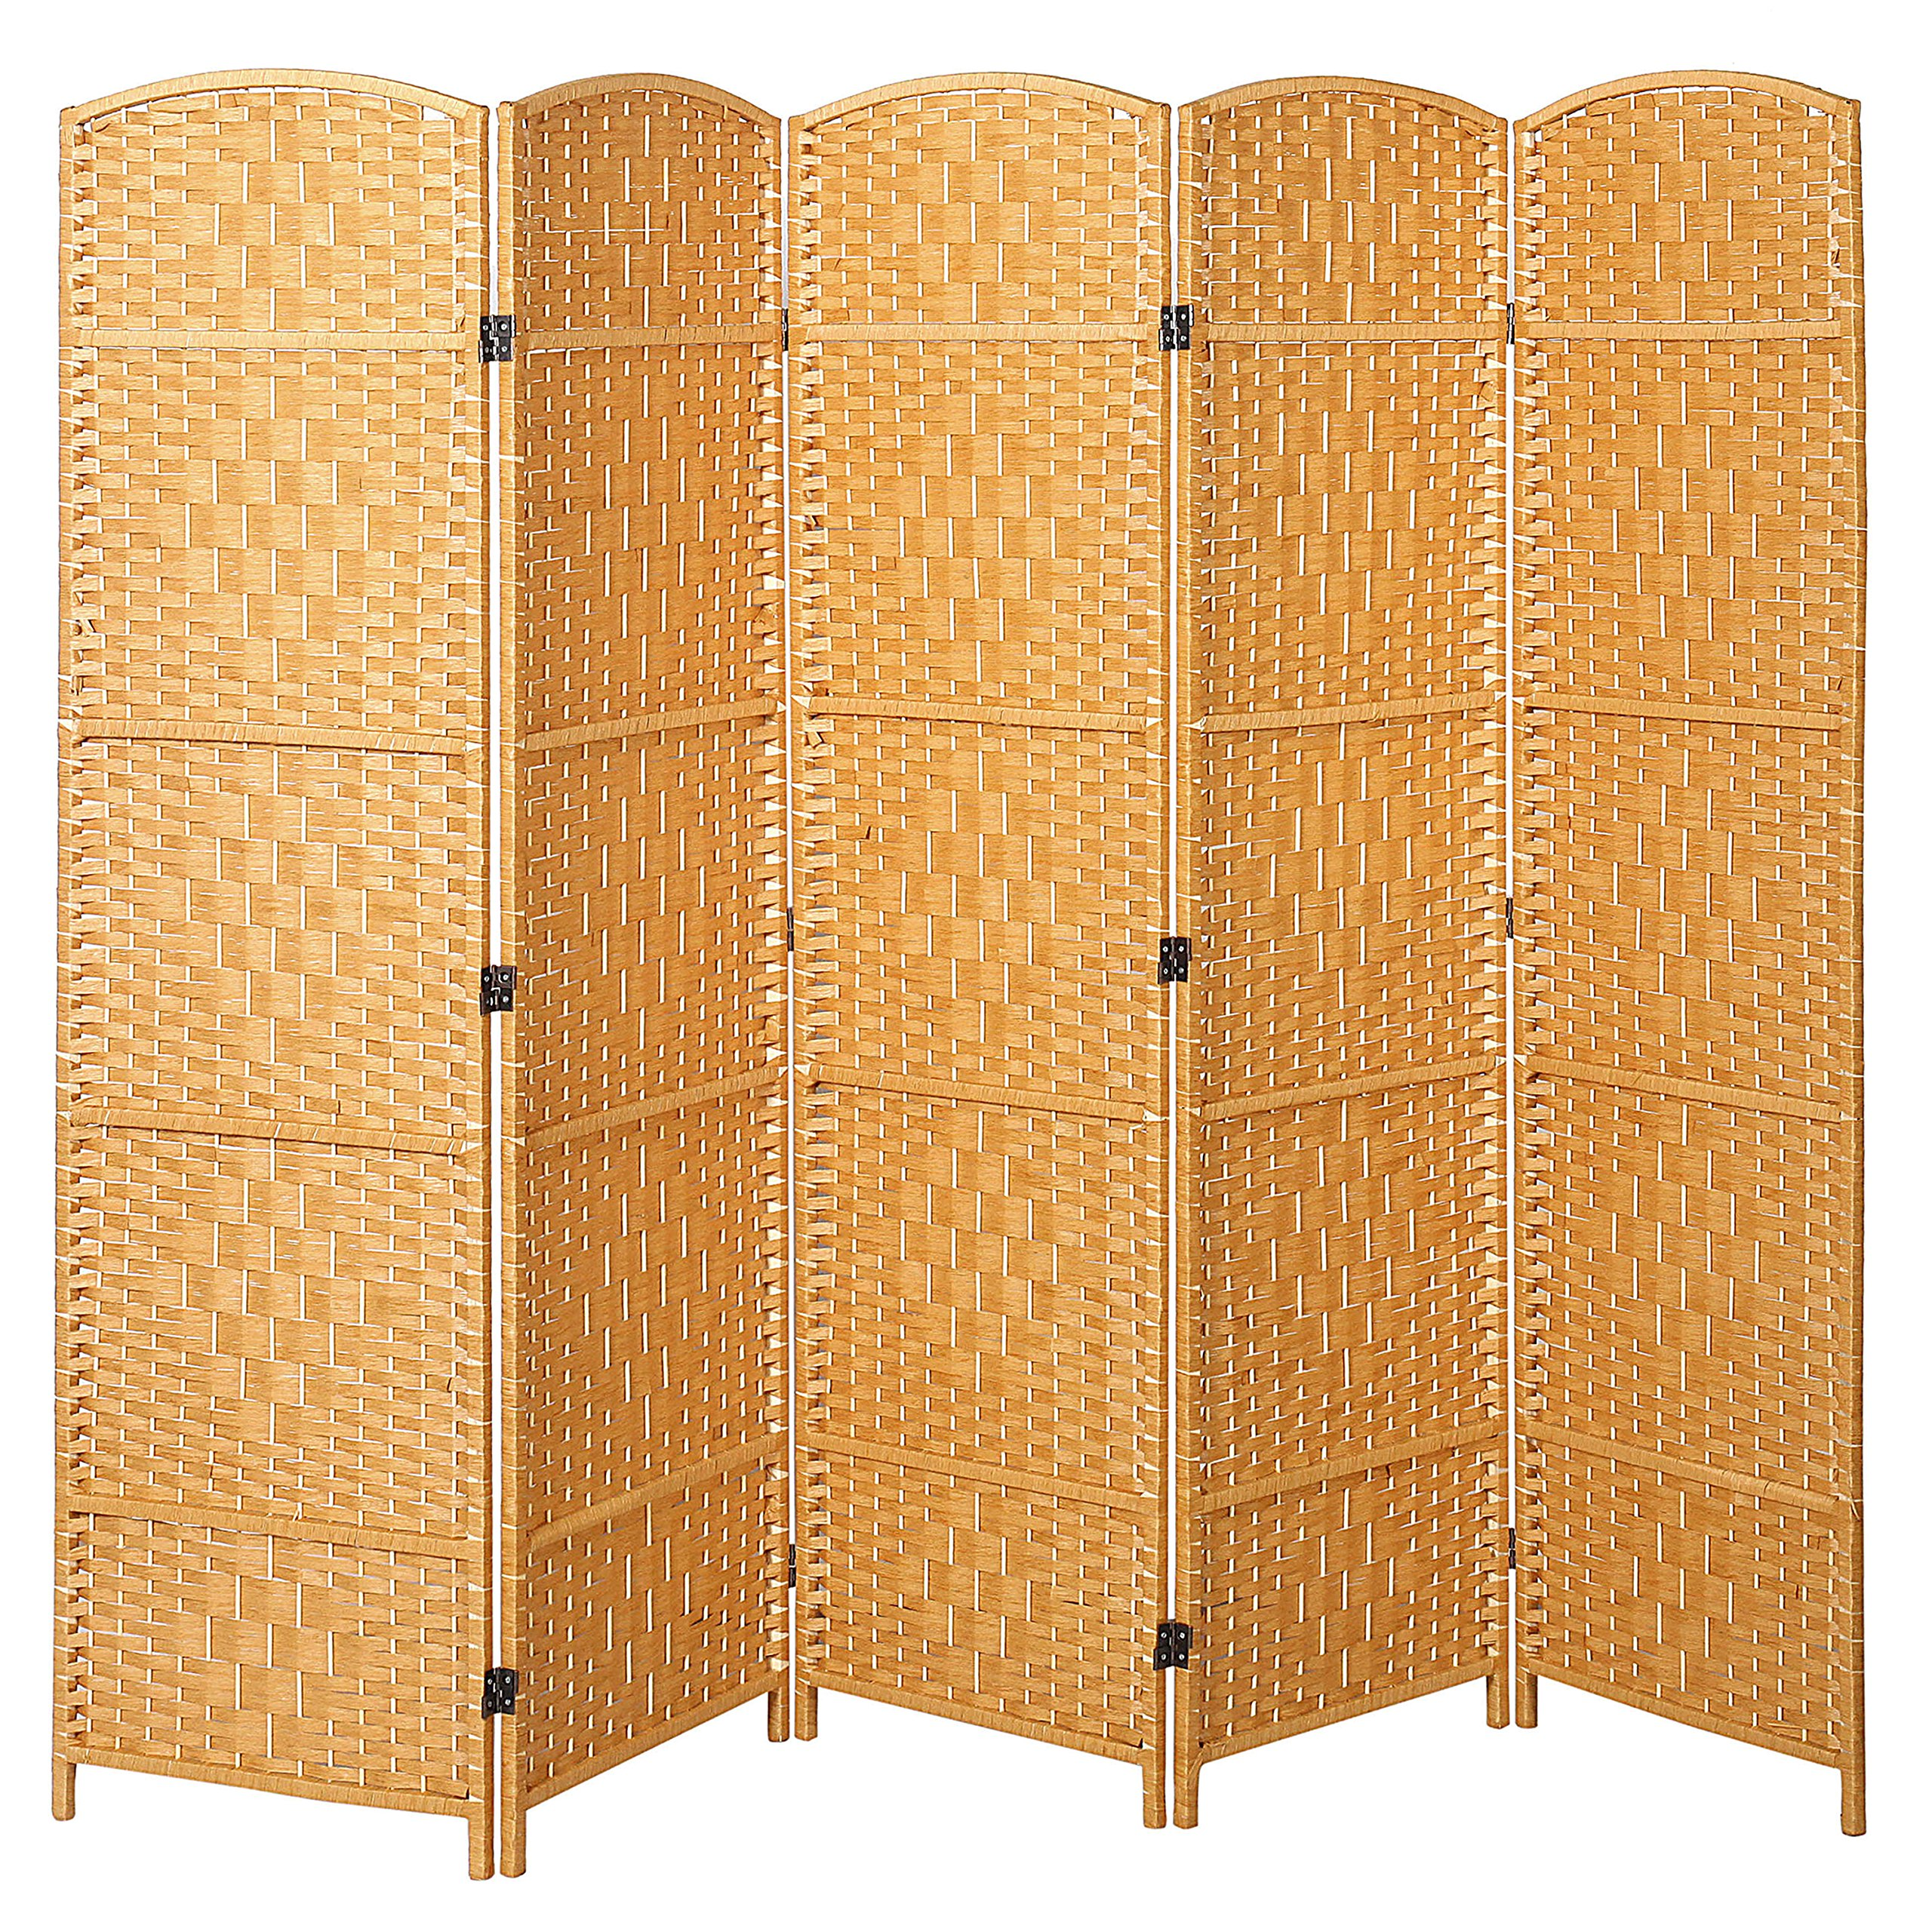 Handwoven Bamboo 5 Panel Partition Semi-Private Room Divider with Dual Hinges, Beige